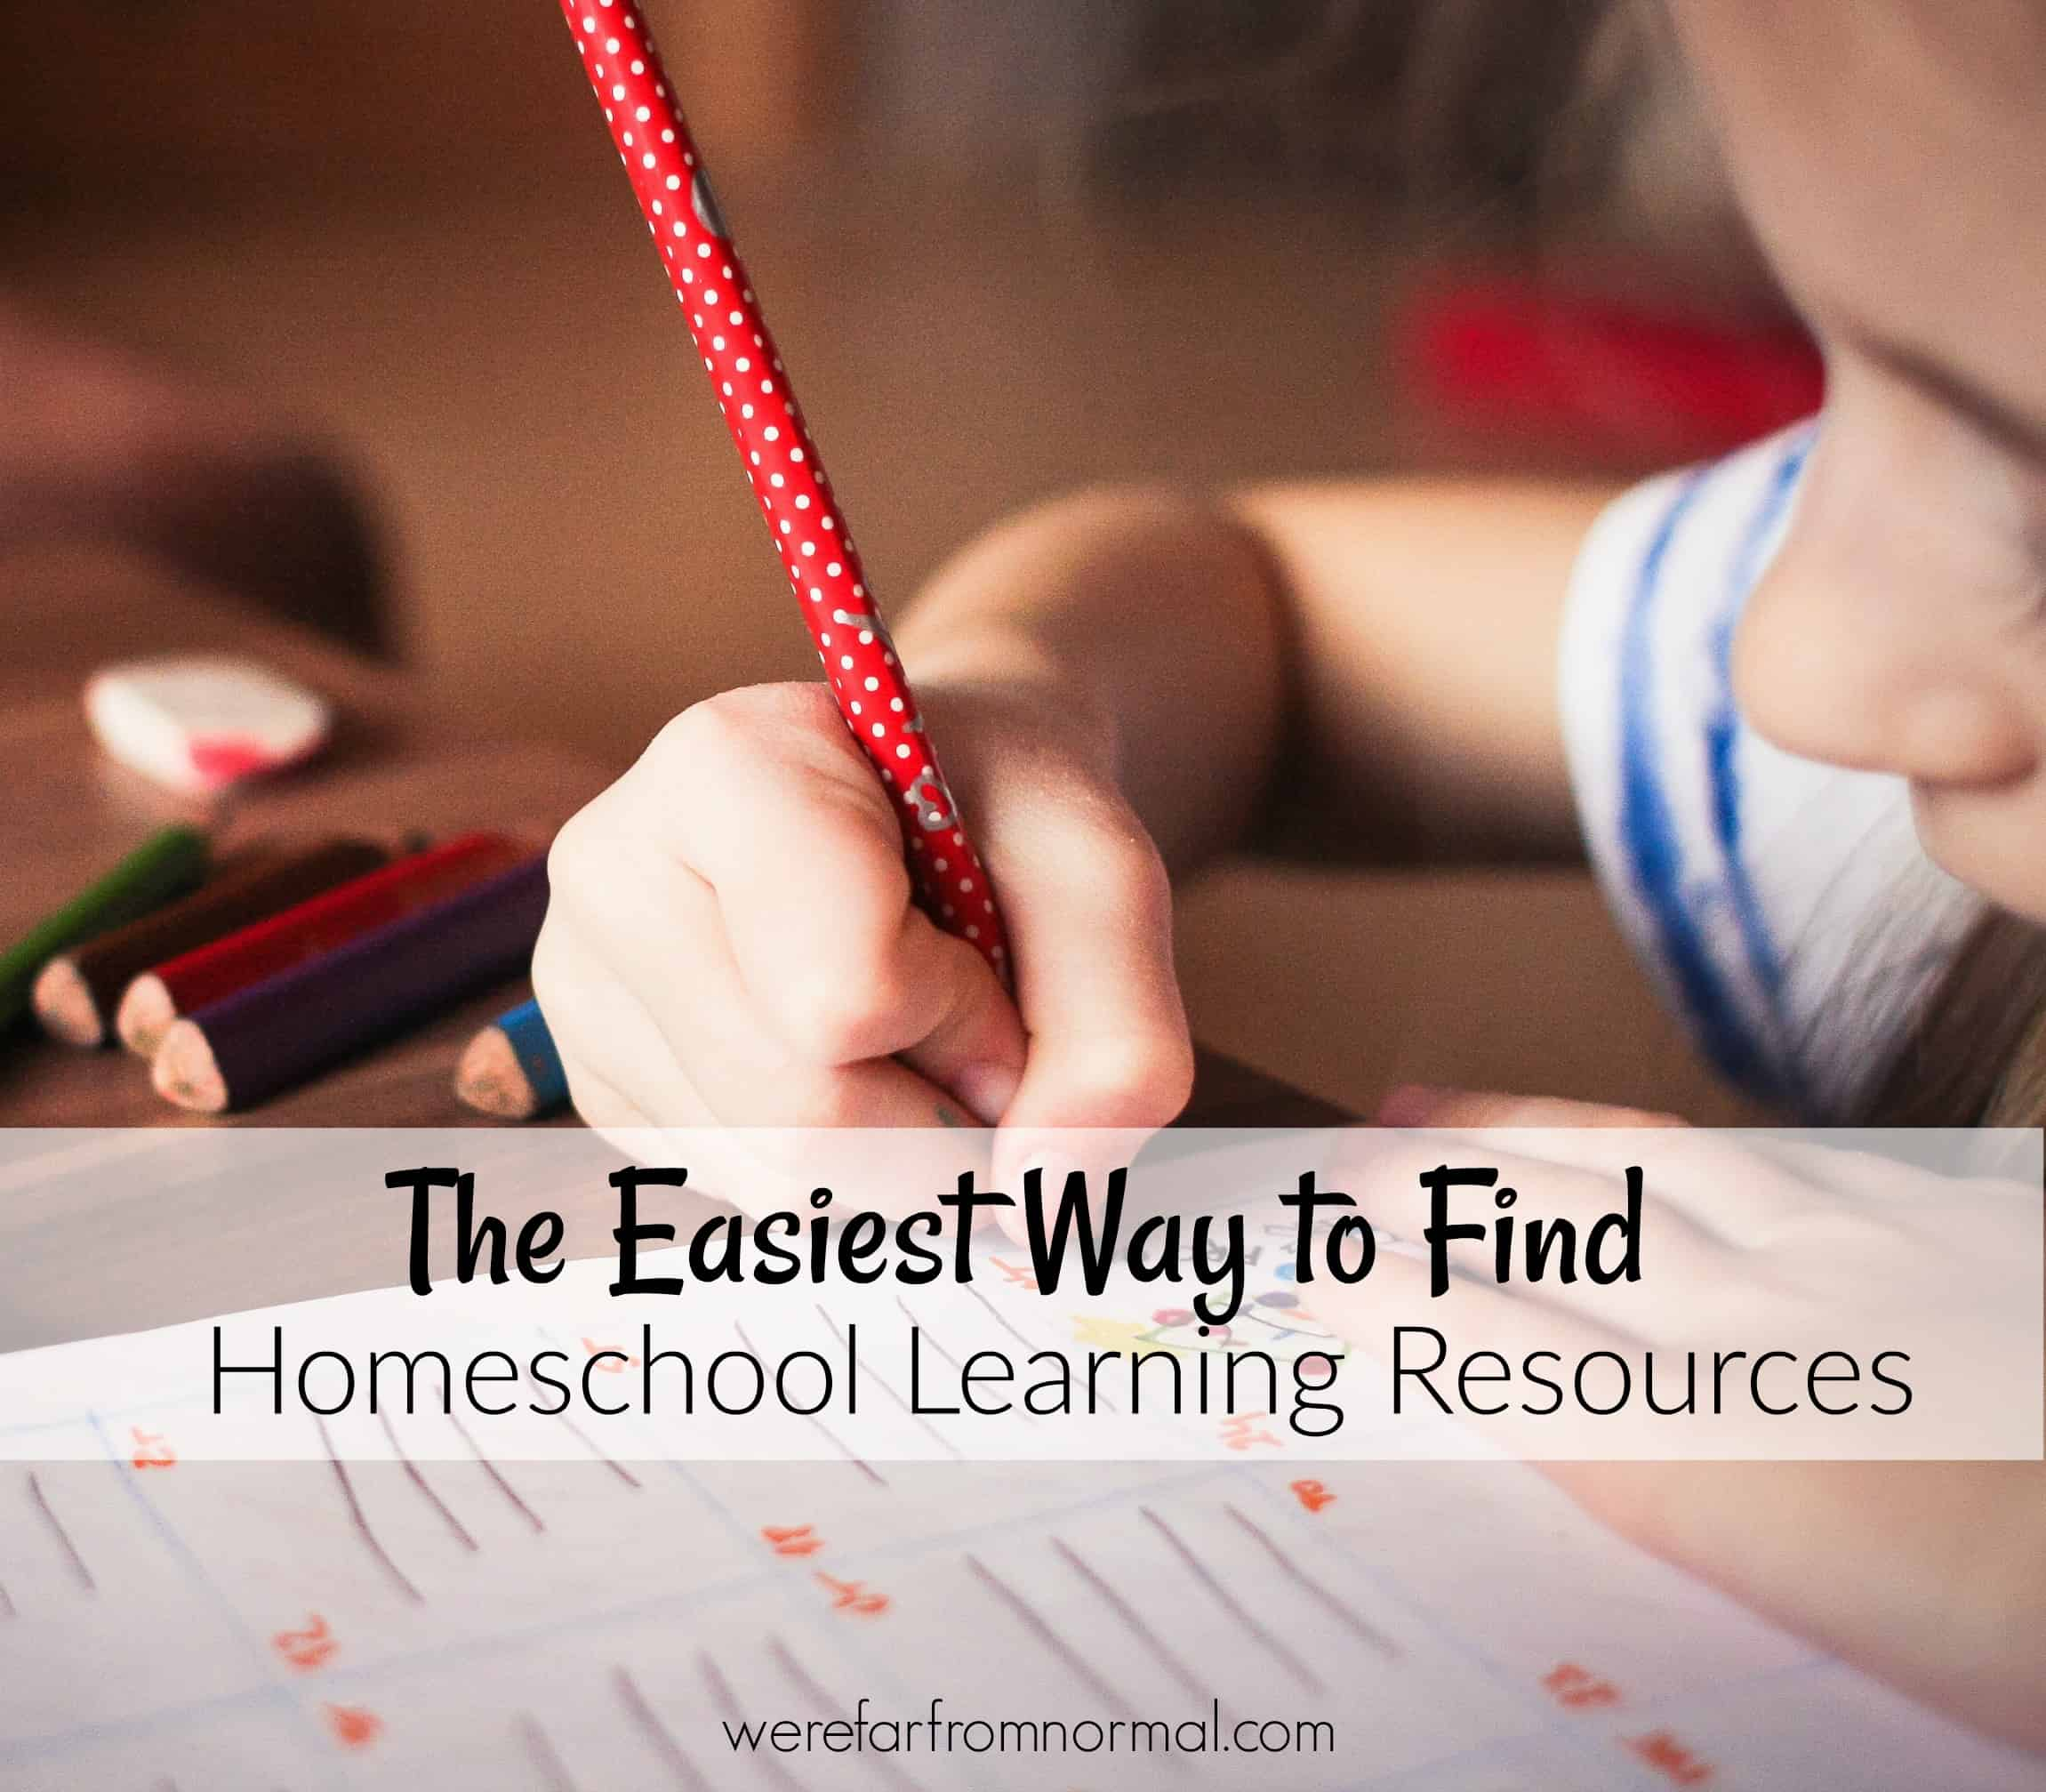 The Easiest Way to Find Homeschool Learning Resources